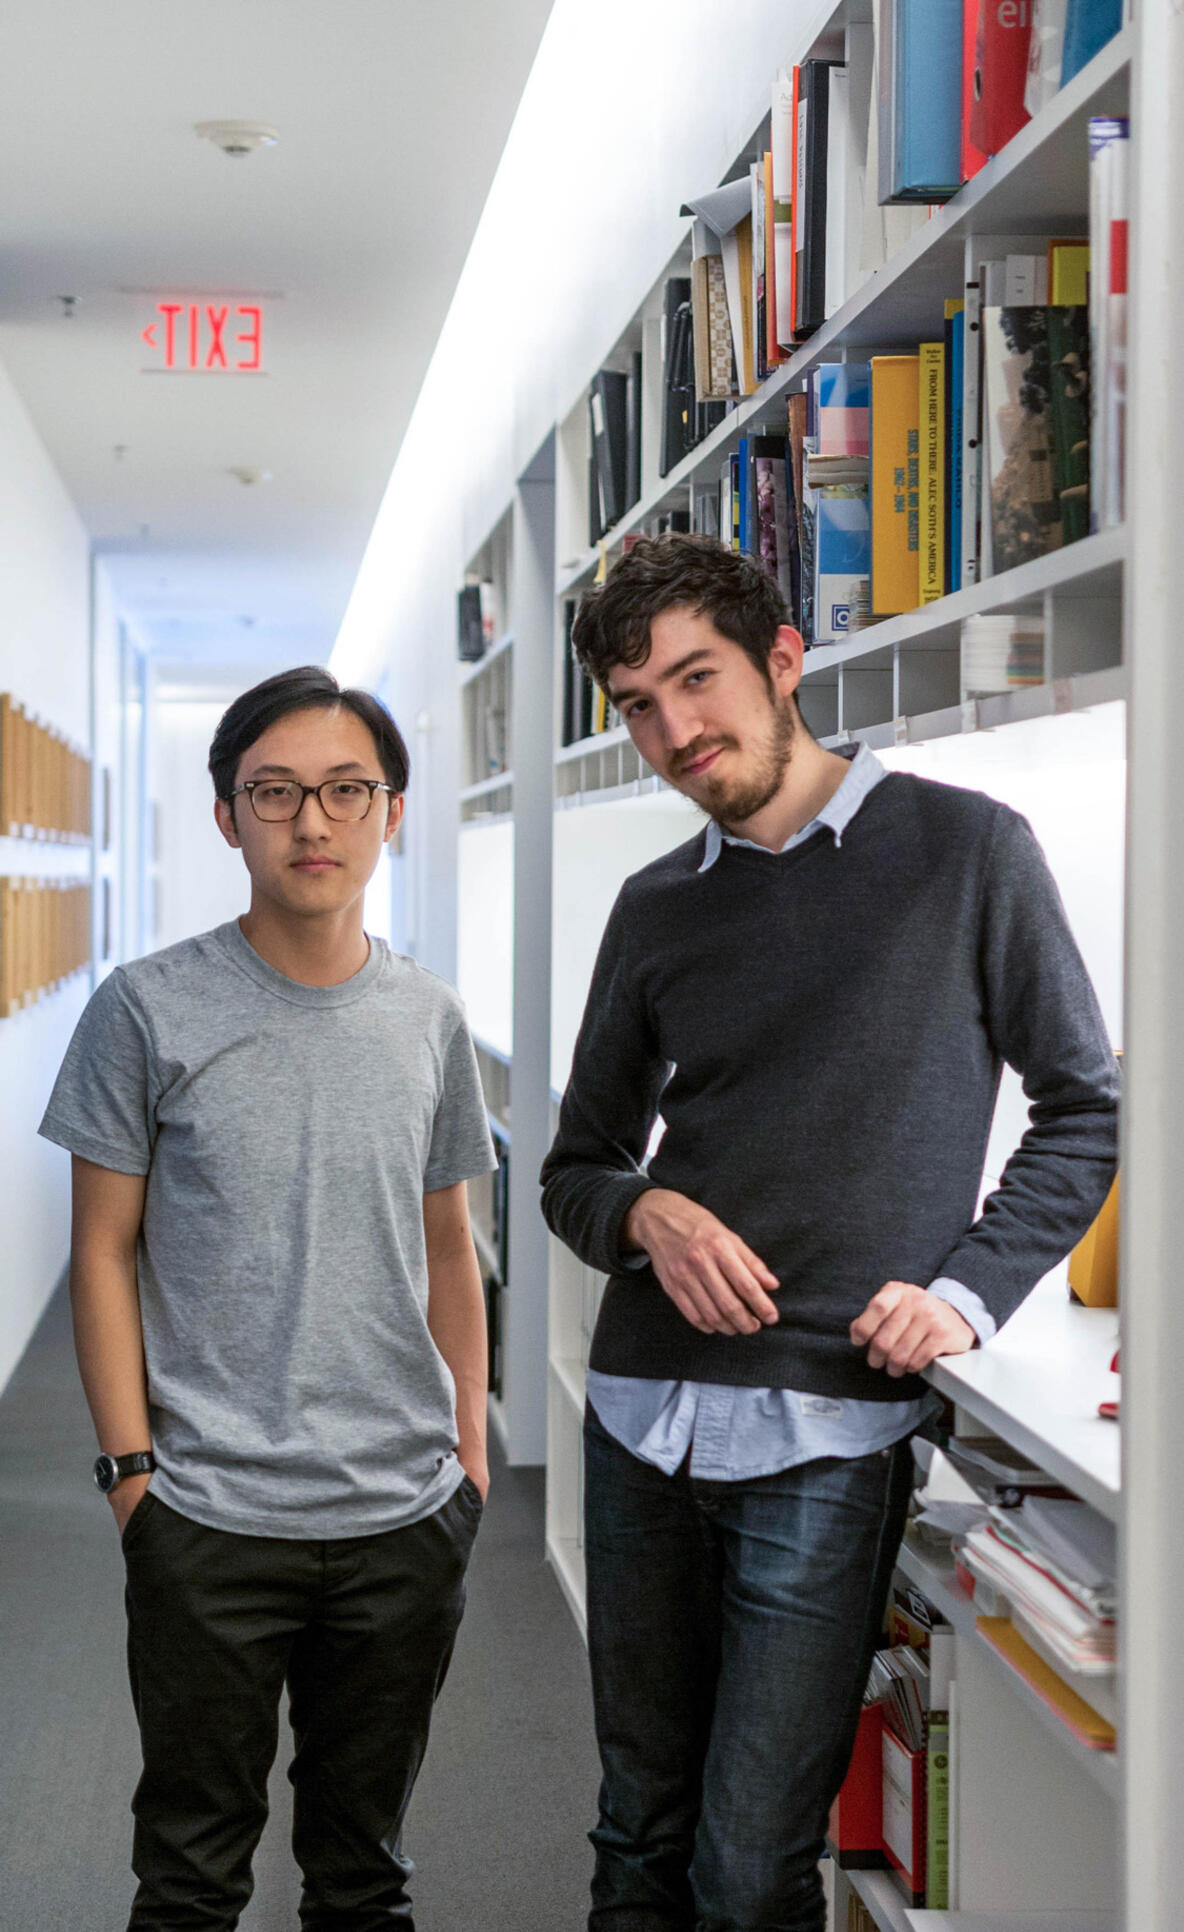 Two students standing in a room with bookshelves behind them